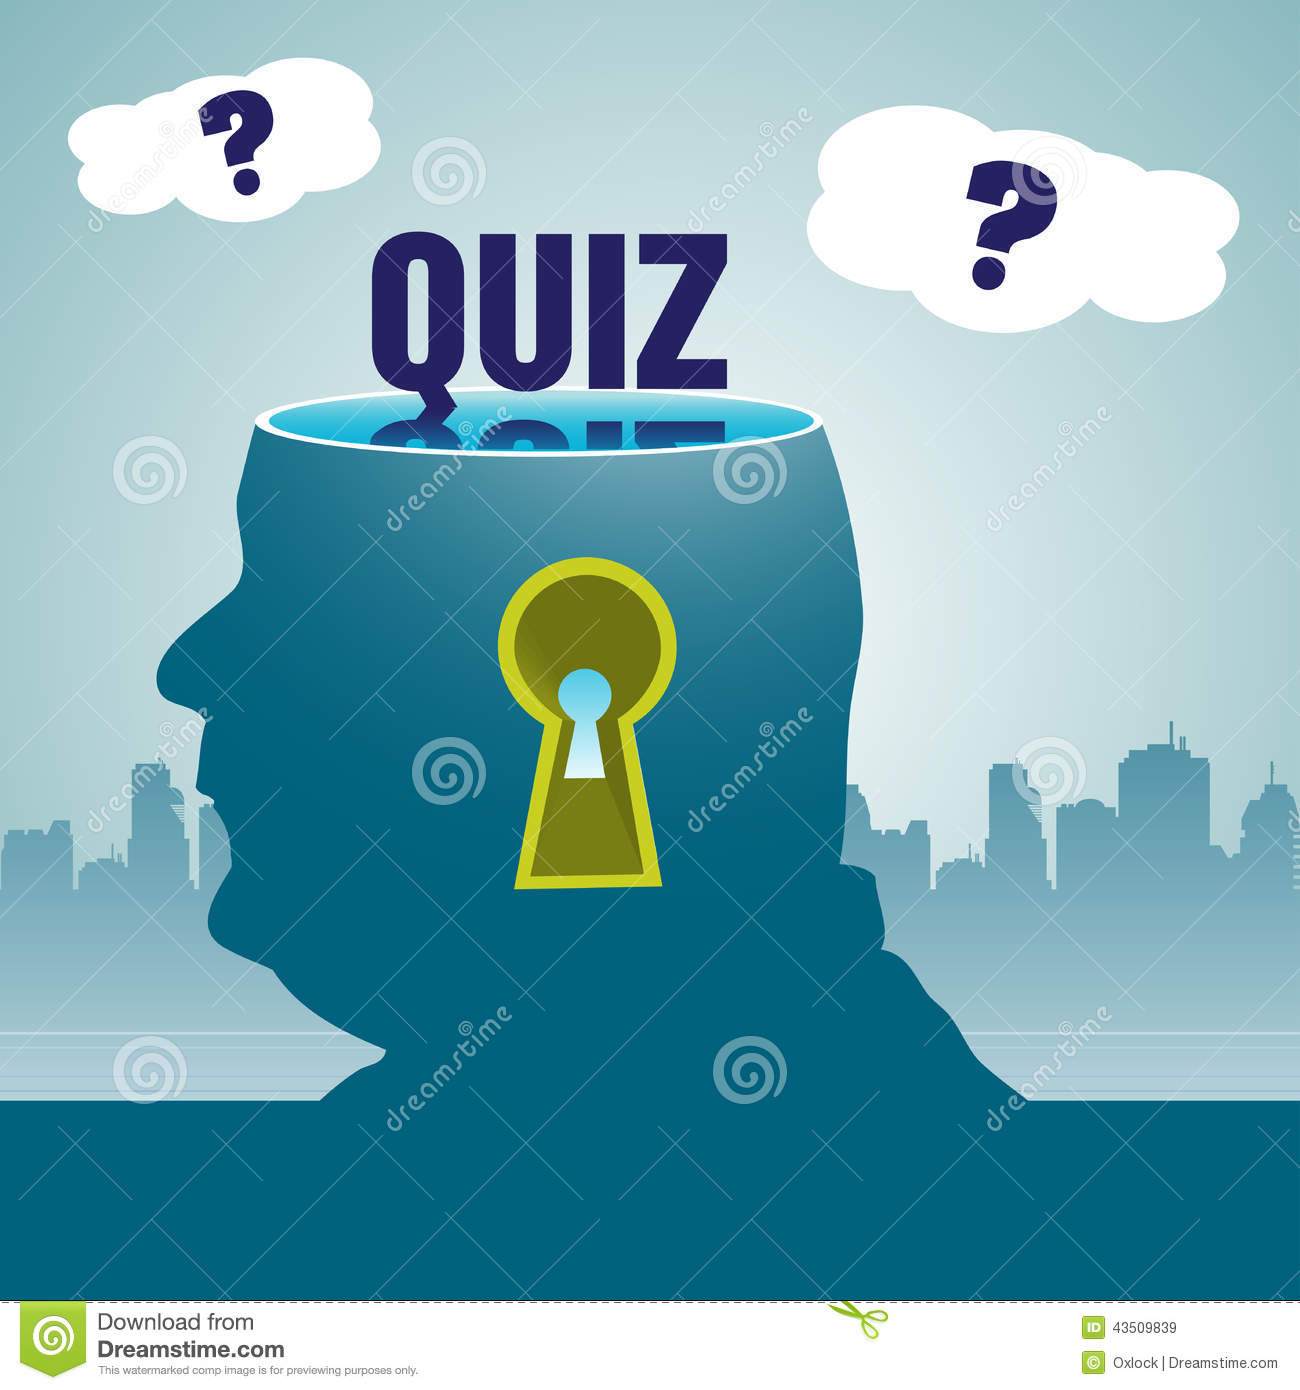 Quiz competition background